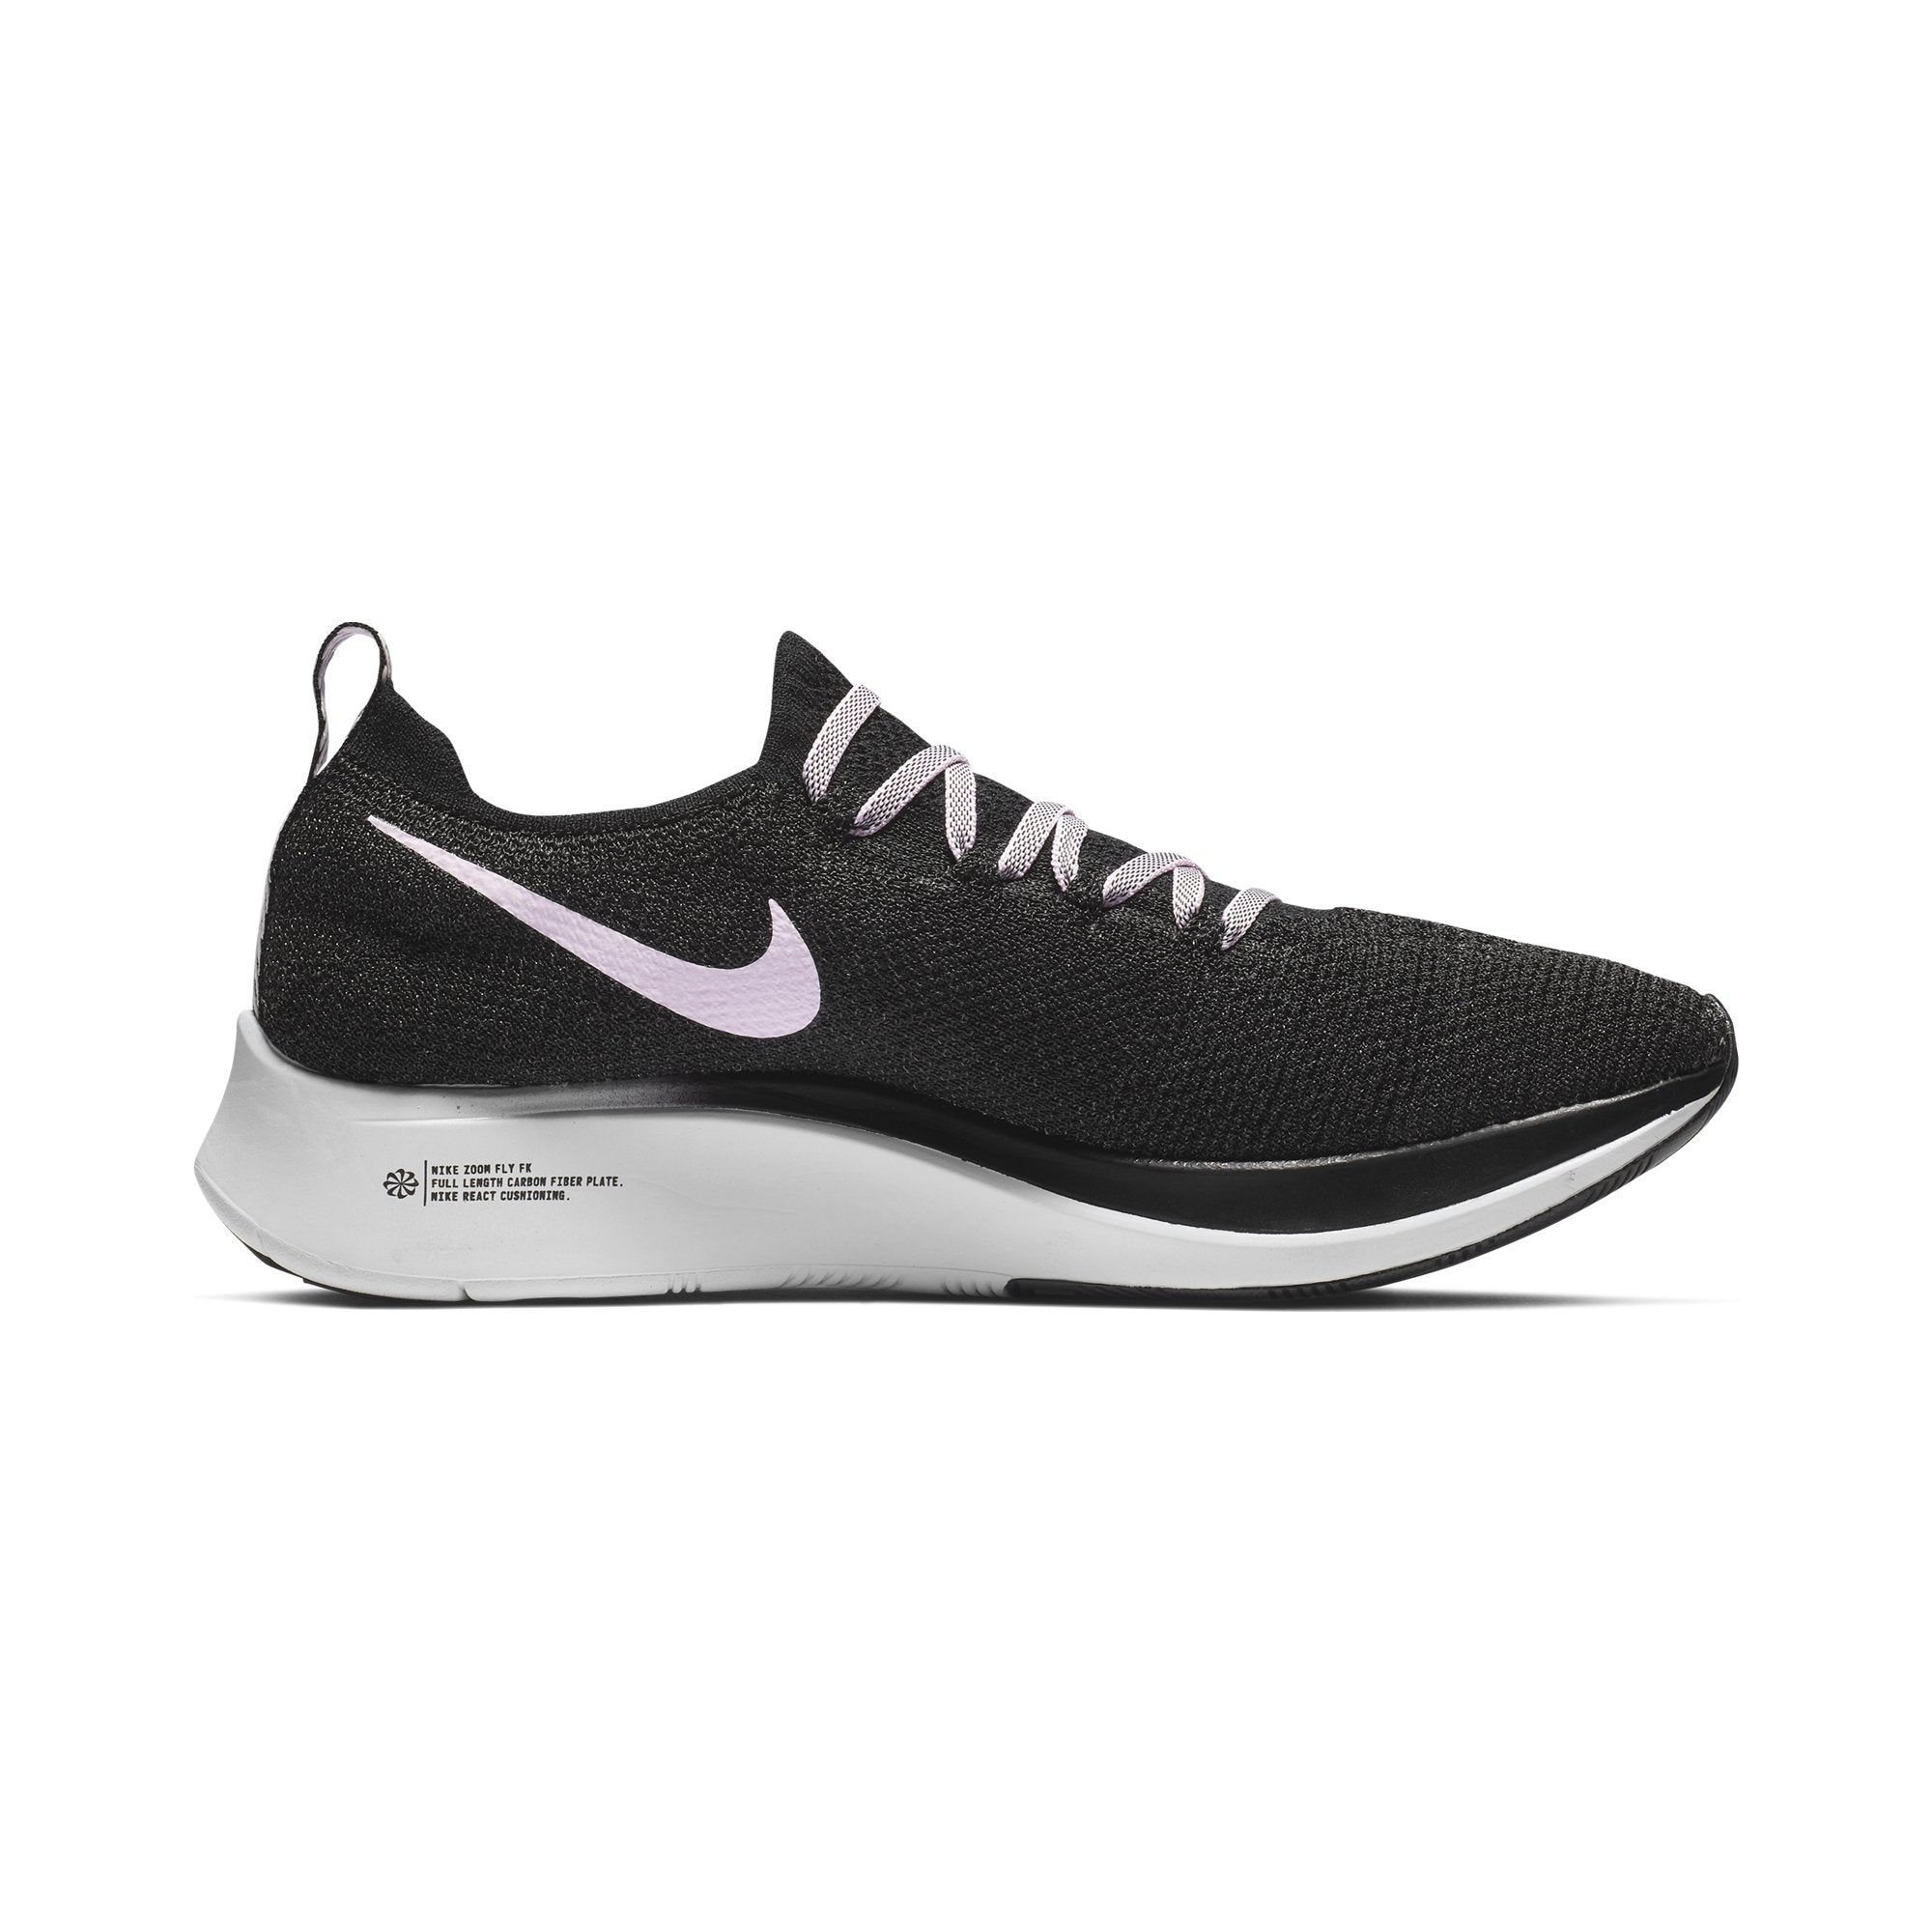 626b98c2c23 Buy Nike Women s Zoom Fly Flyknit Running Shoes